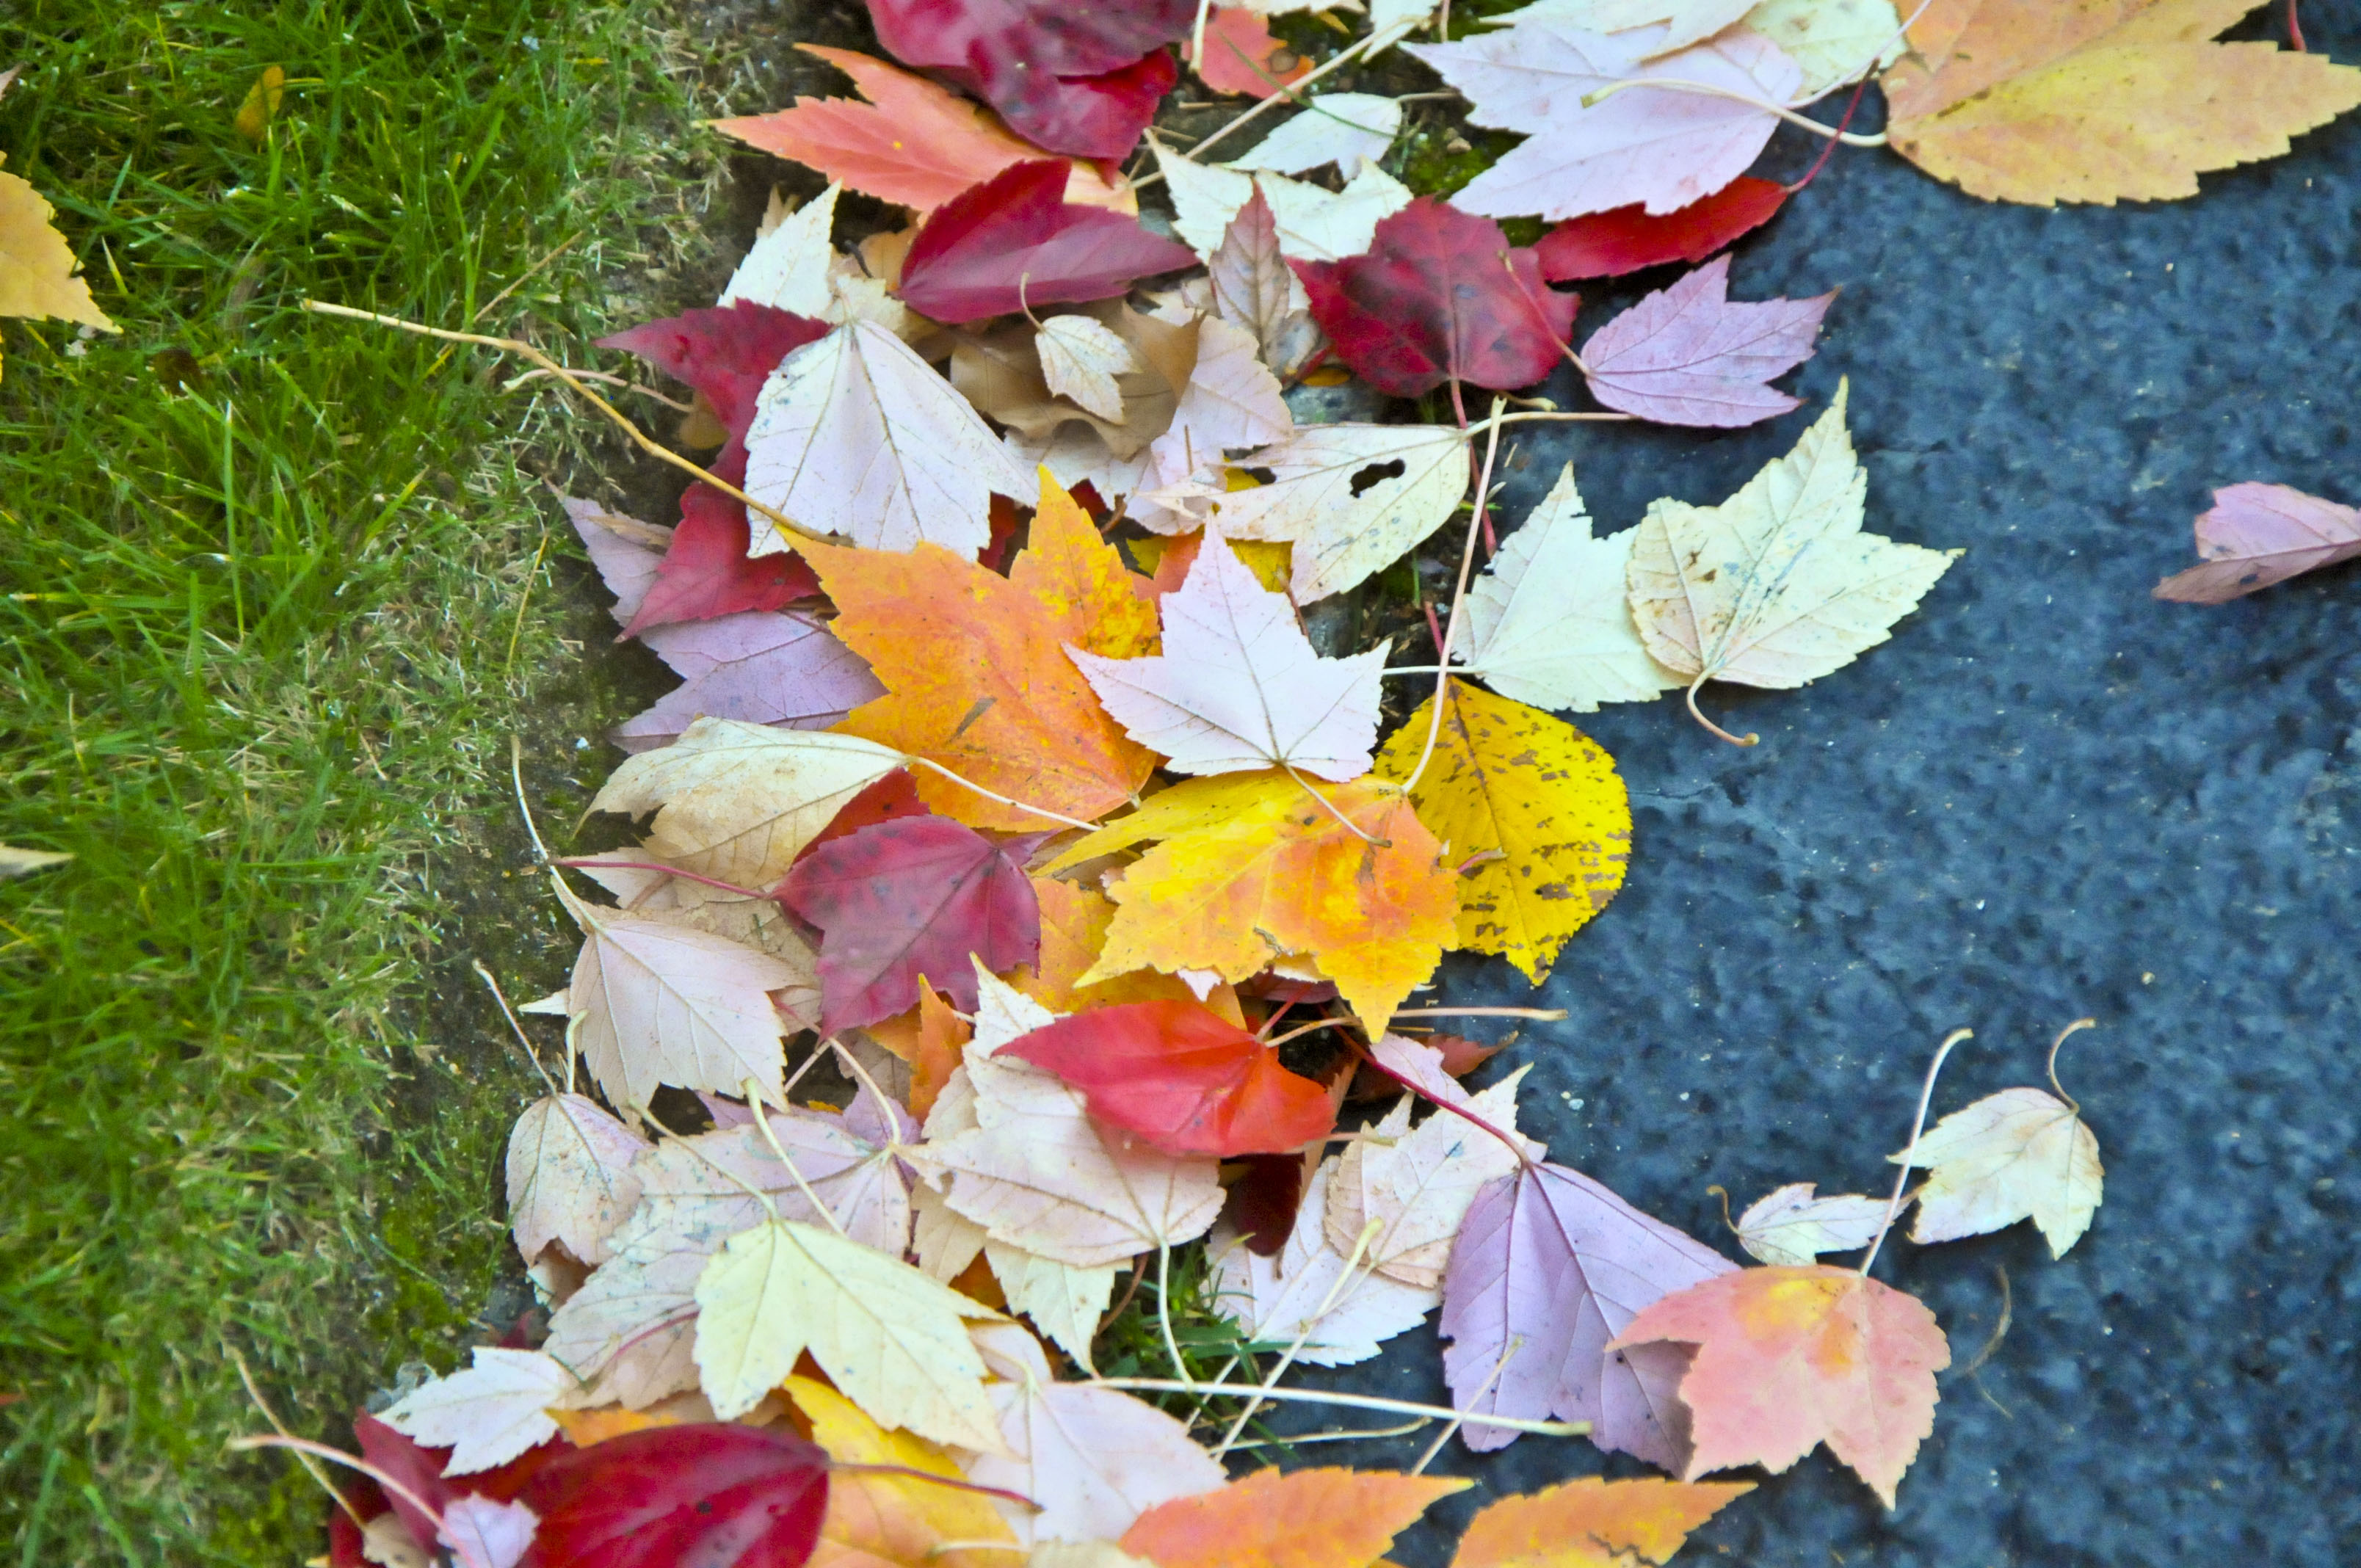 Let kids get bored, collect leaves, make their own fun